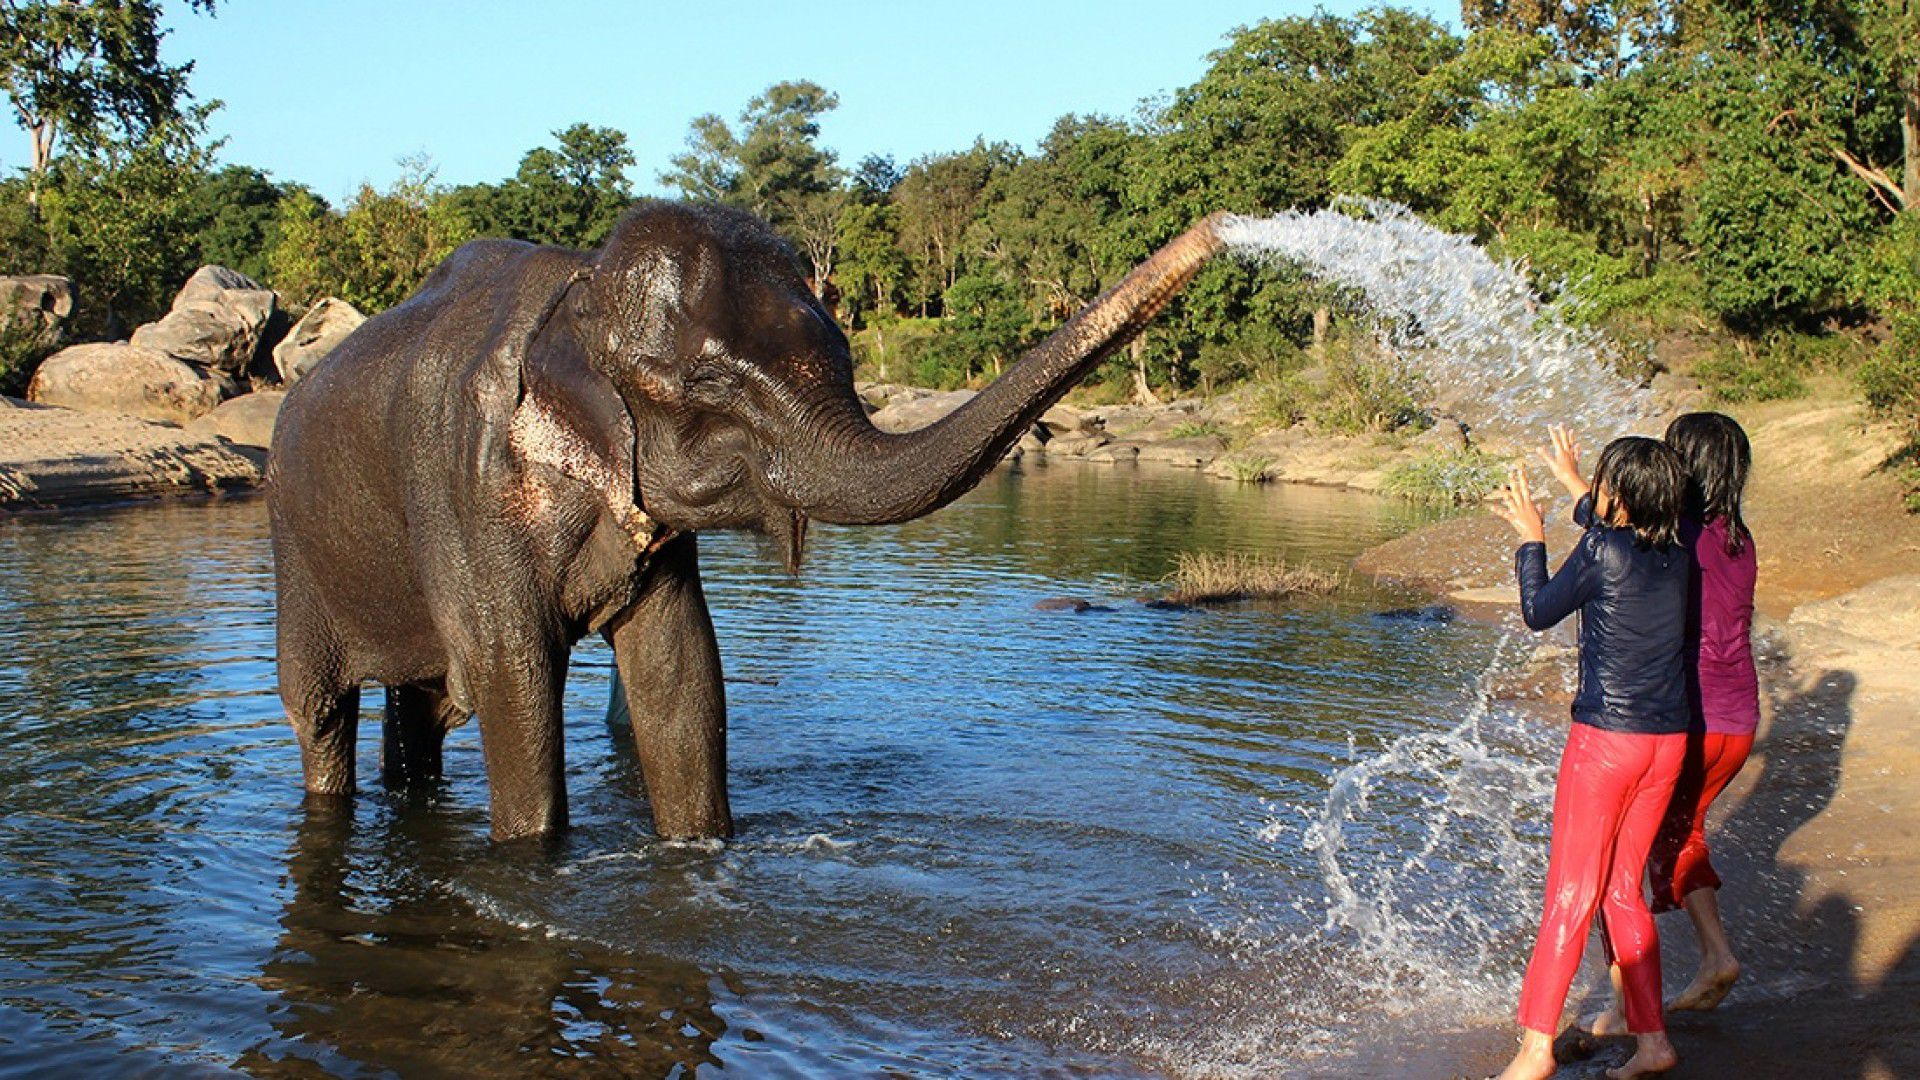 Where To See Elephants In India 4 Ethical Places